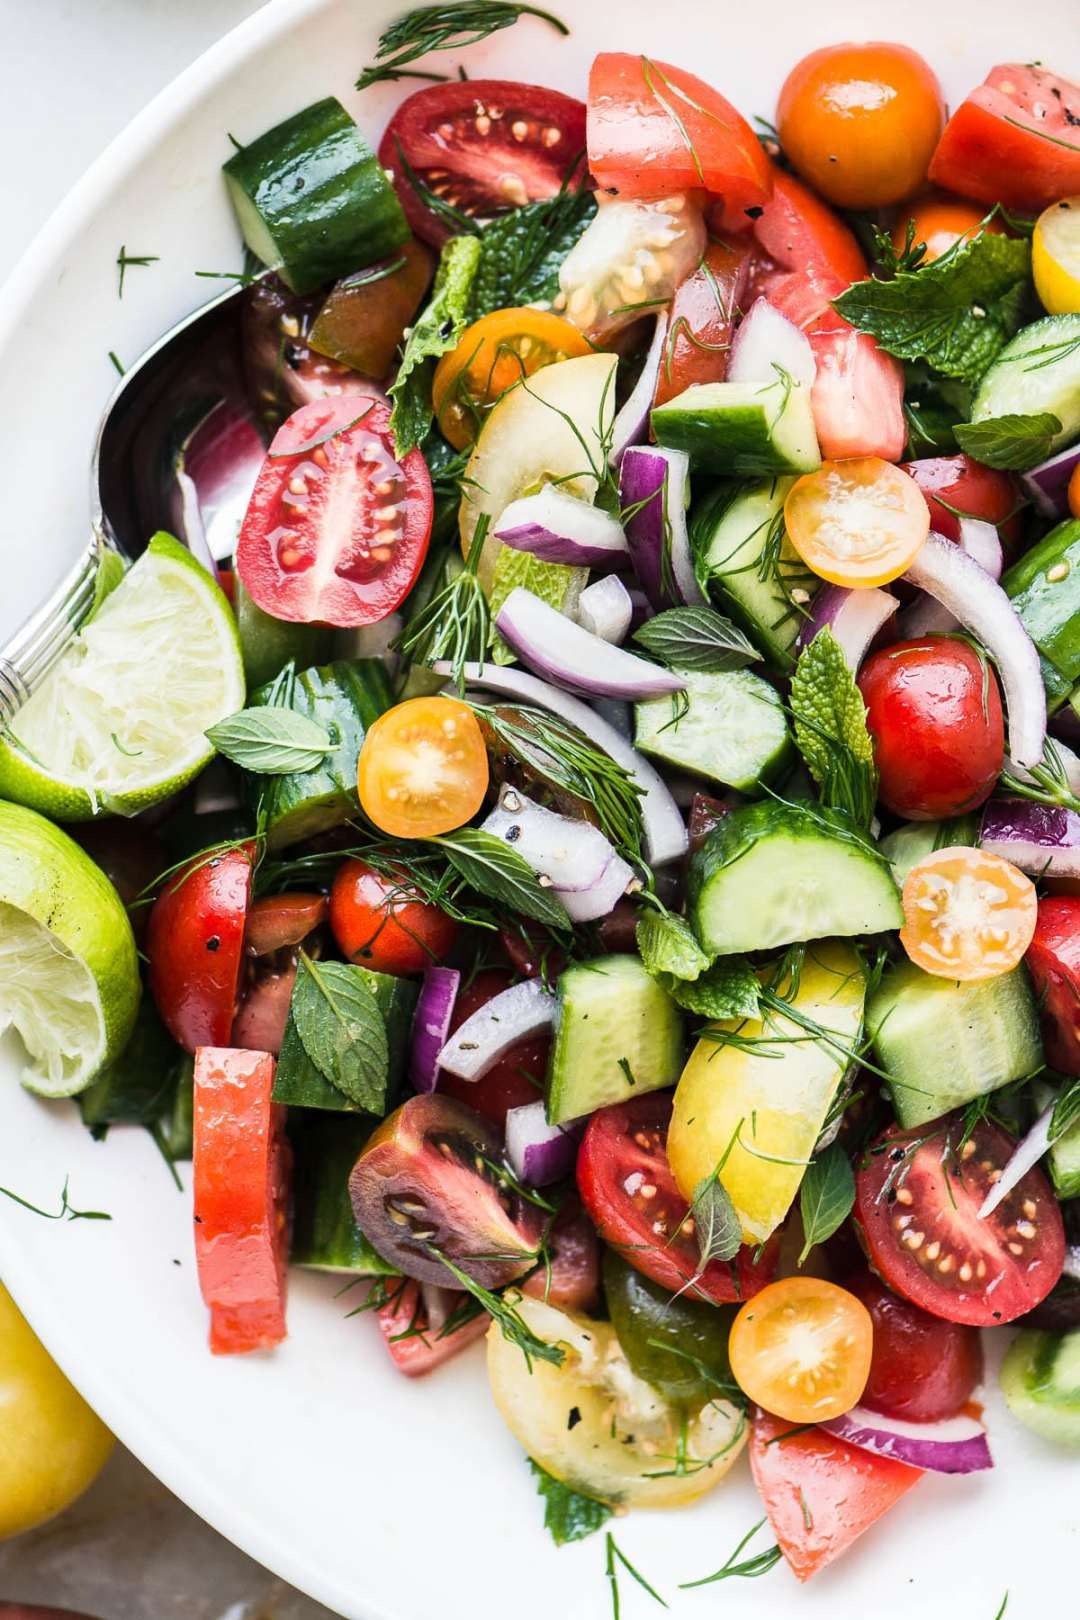 Colorful Shirazi Salad made with tomatoes, cucumbers, red onion, and herbs